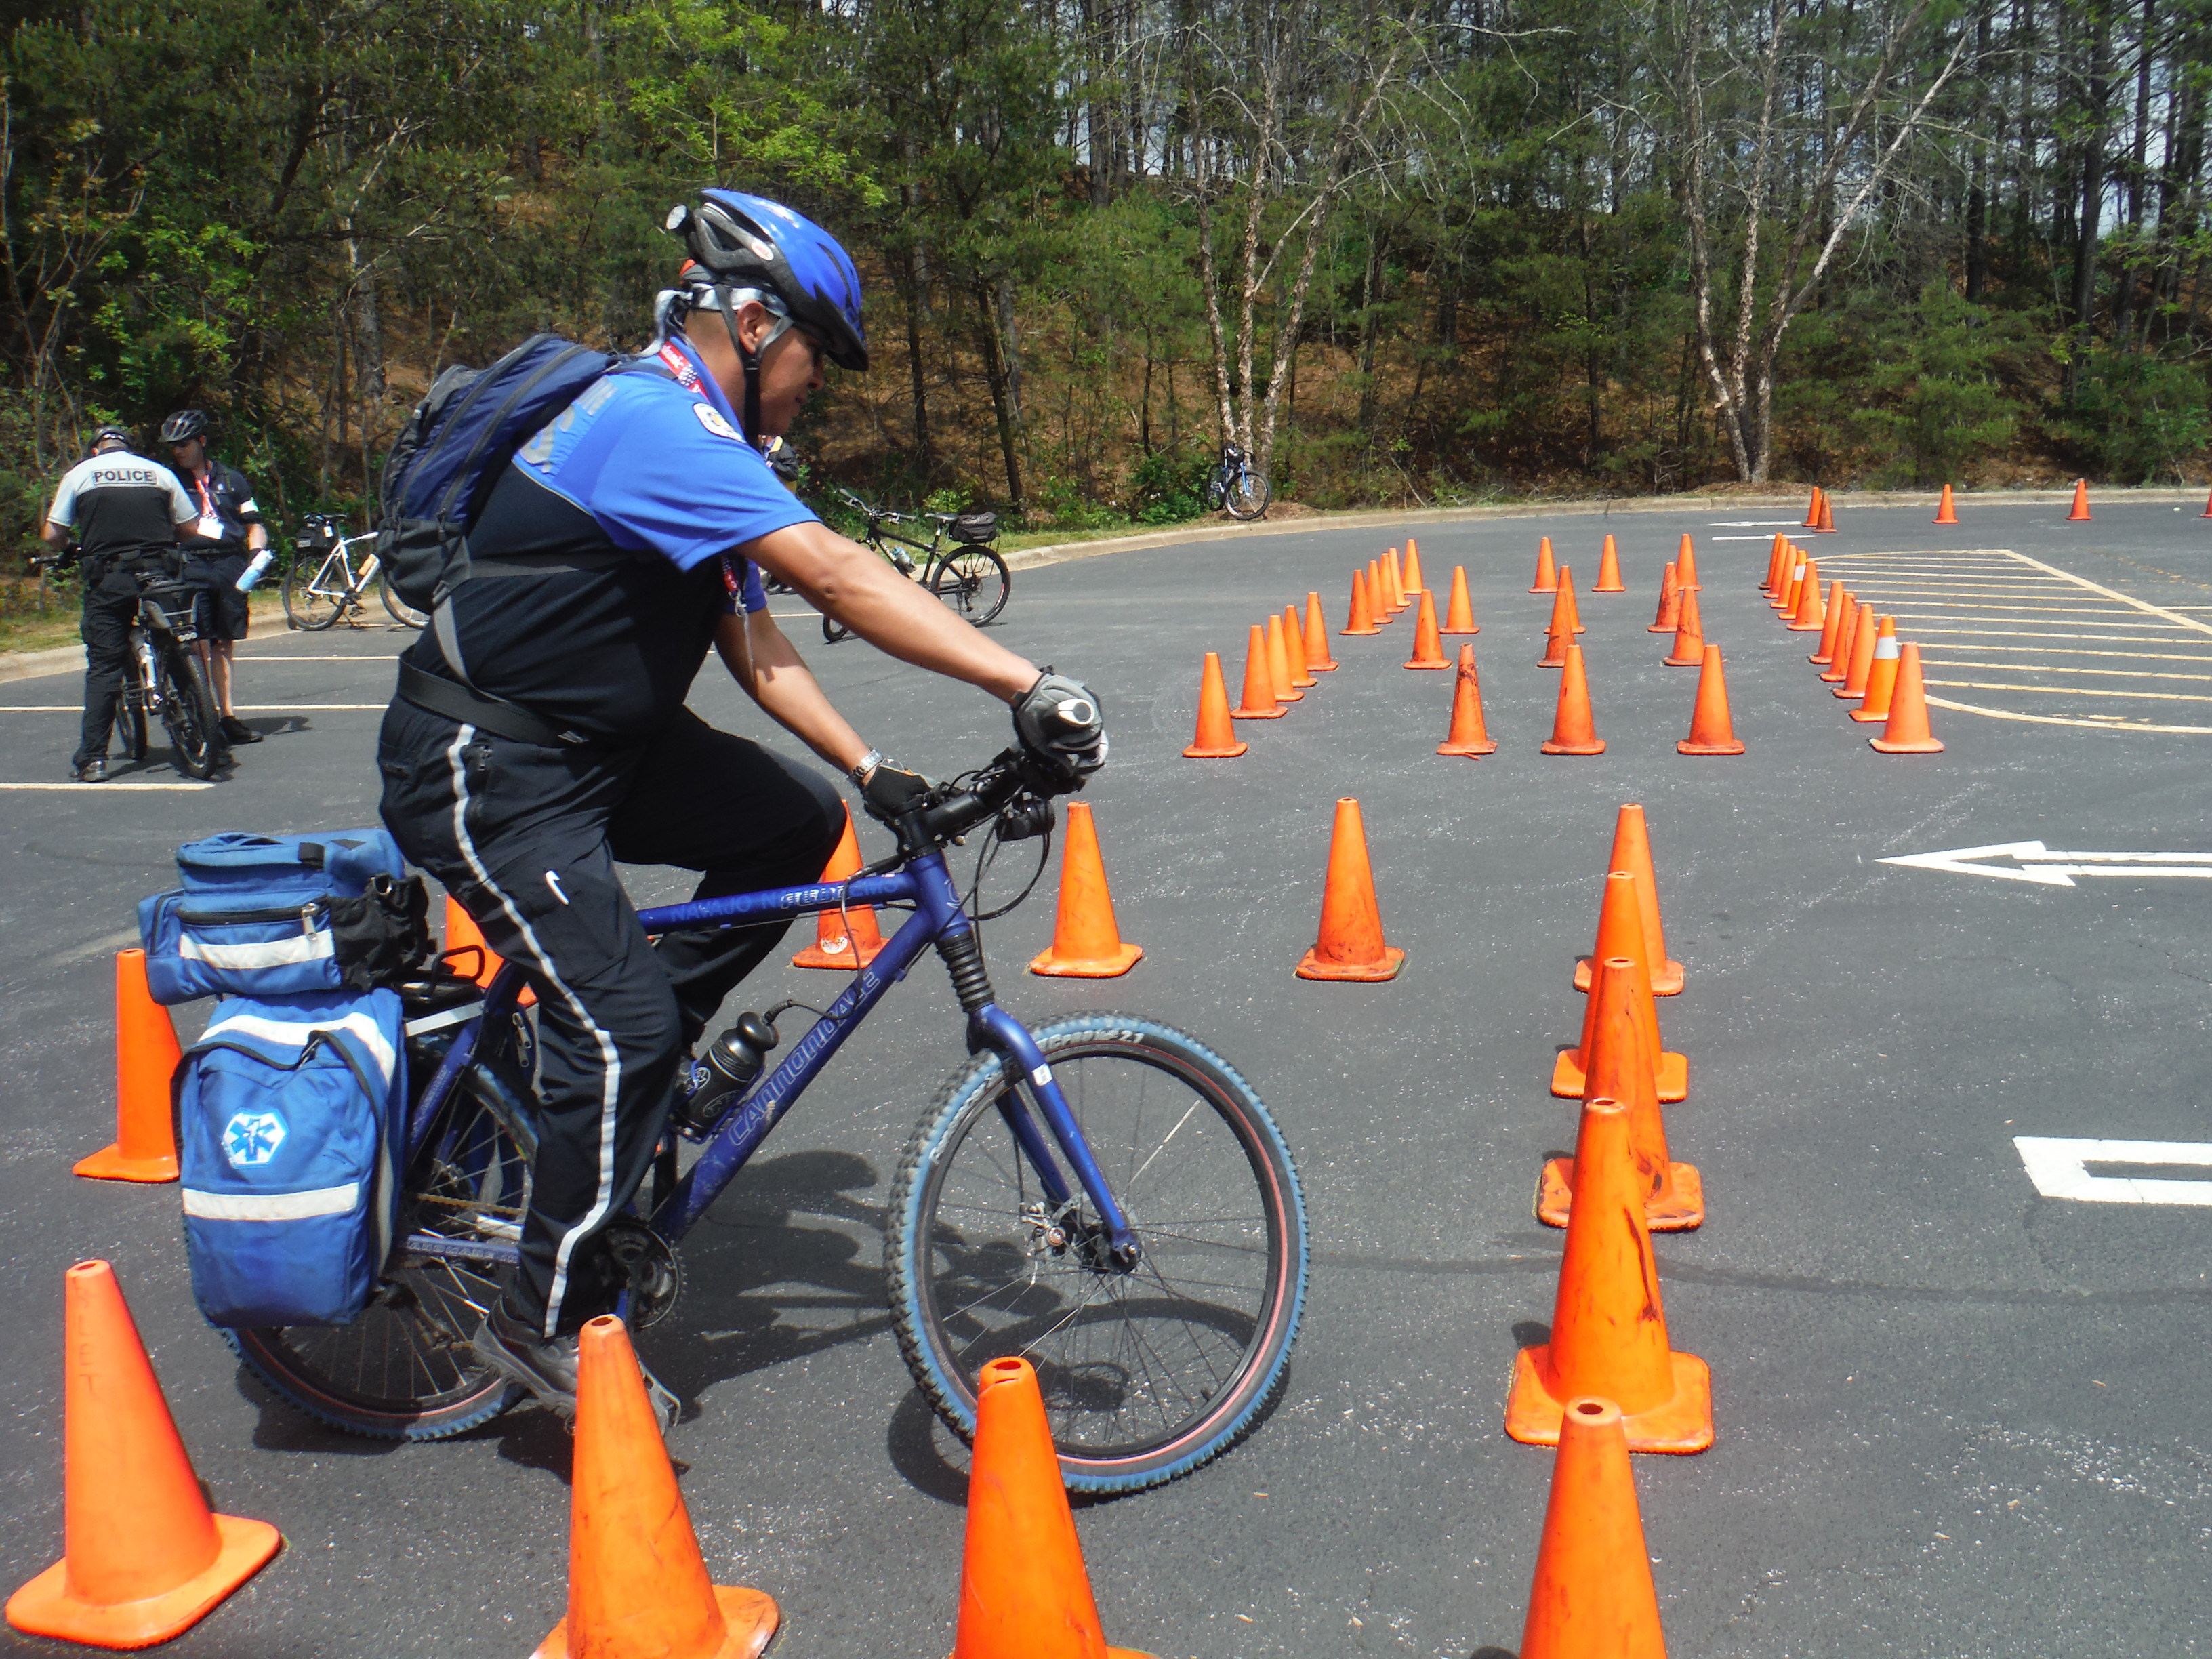 International Police Mountain Bike Conference held in Asheville